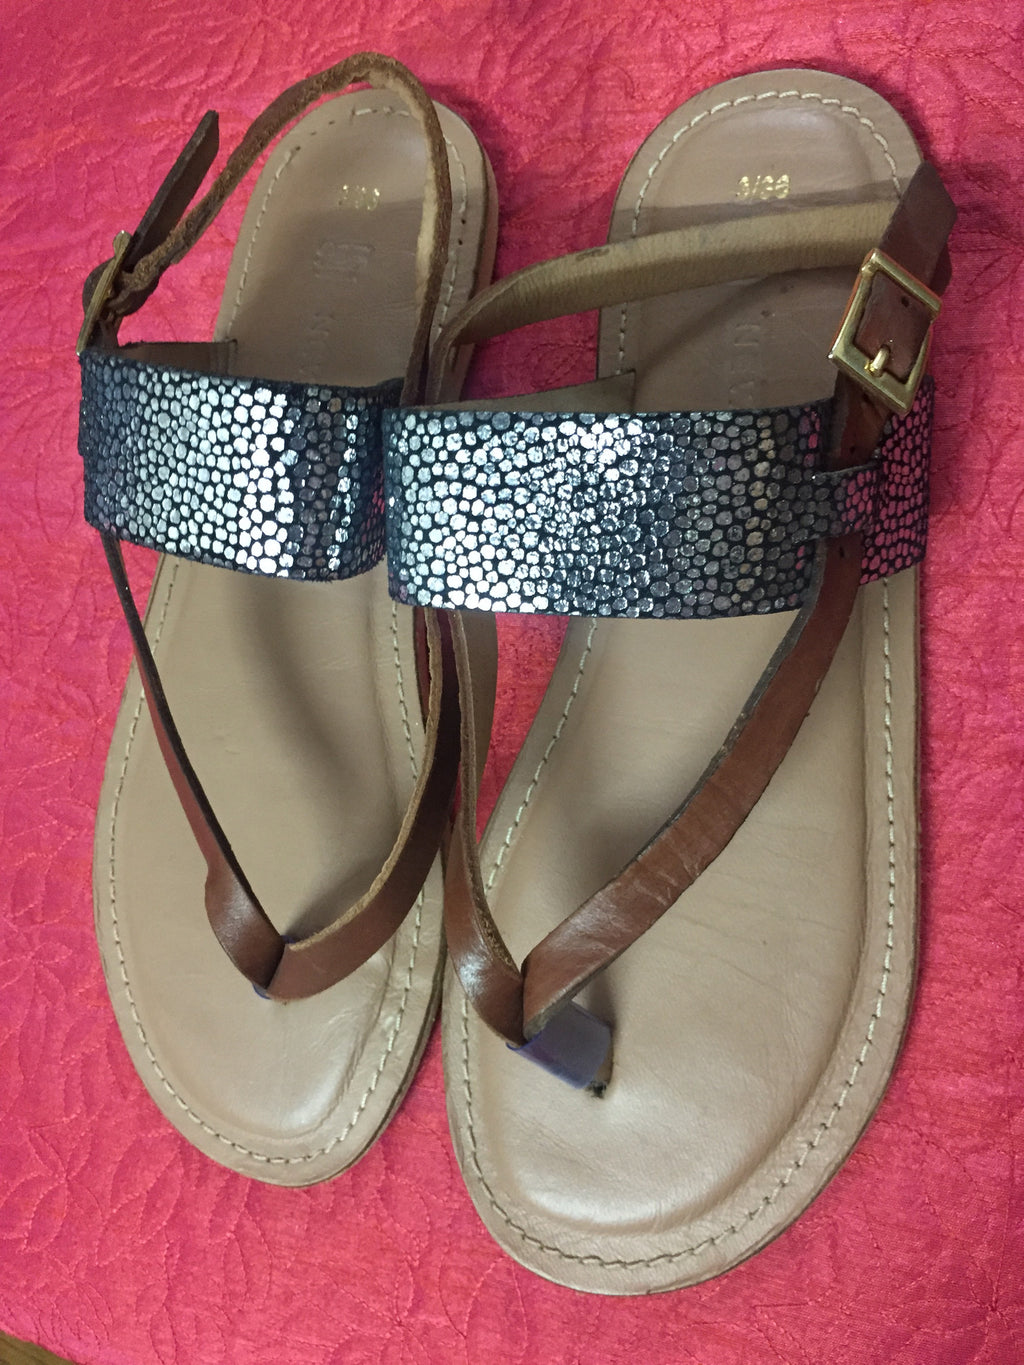 Metallic Silver & Brown Flats